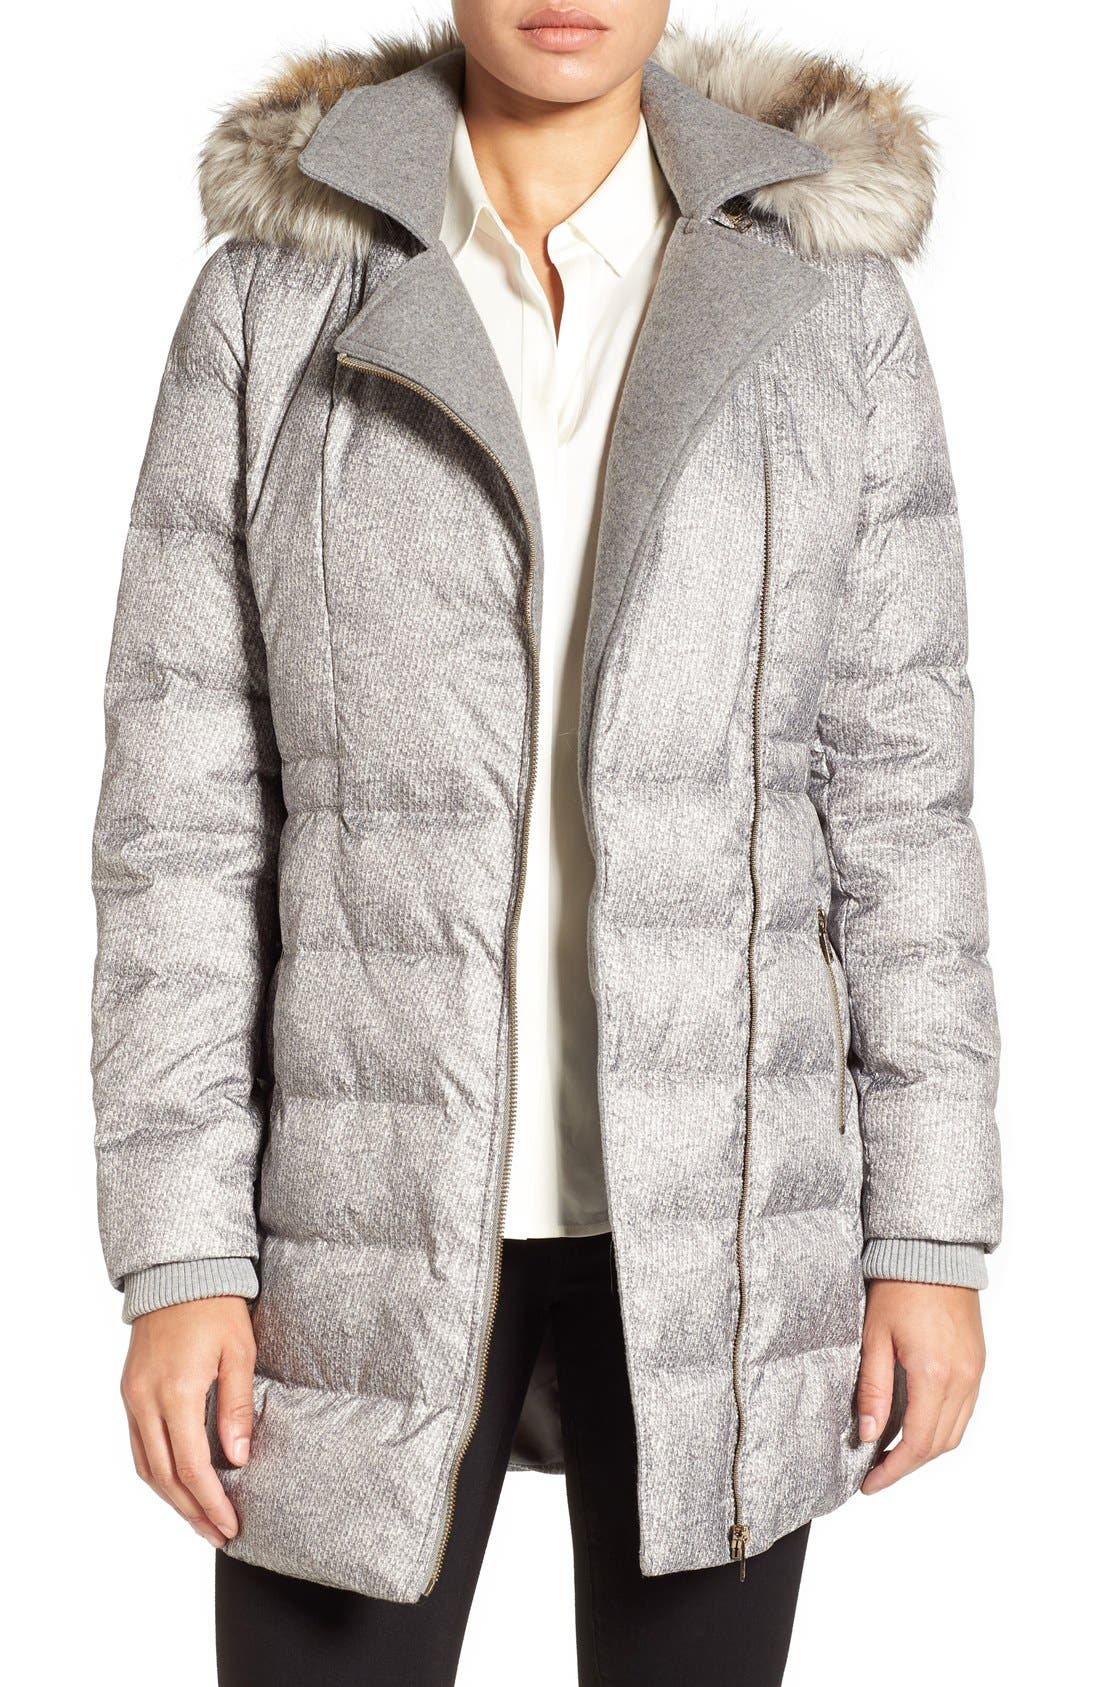 Main Image - Catherine Catherine Malandrino Print Quilted Coat with Faux Fur Trim